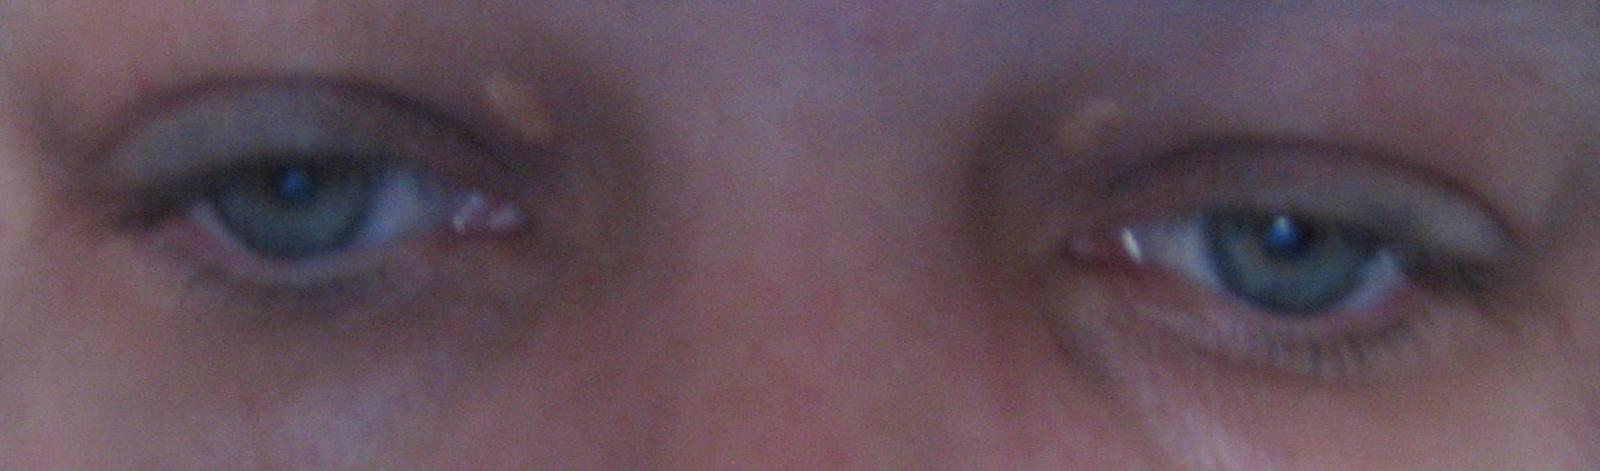 White spots above eye lids?? Anyone Know what causes this?-eyes-005 ...